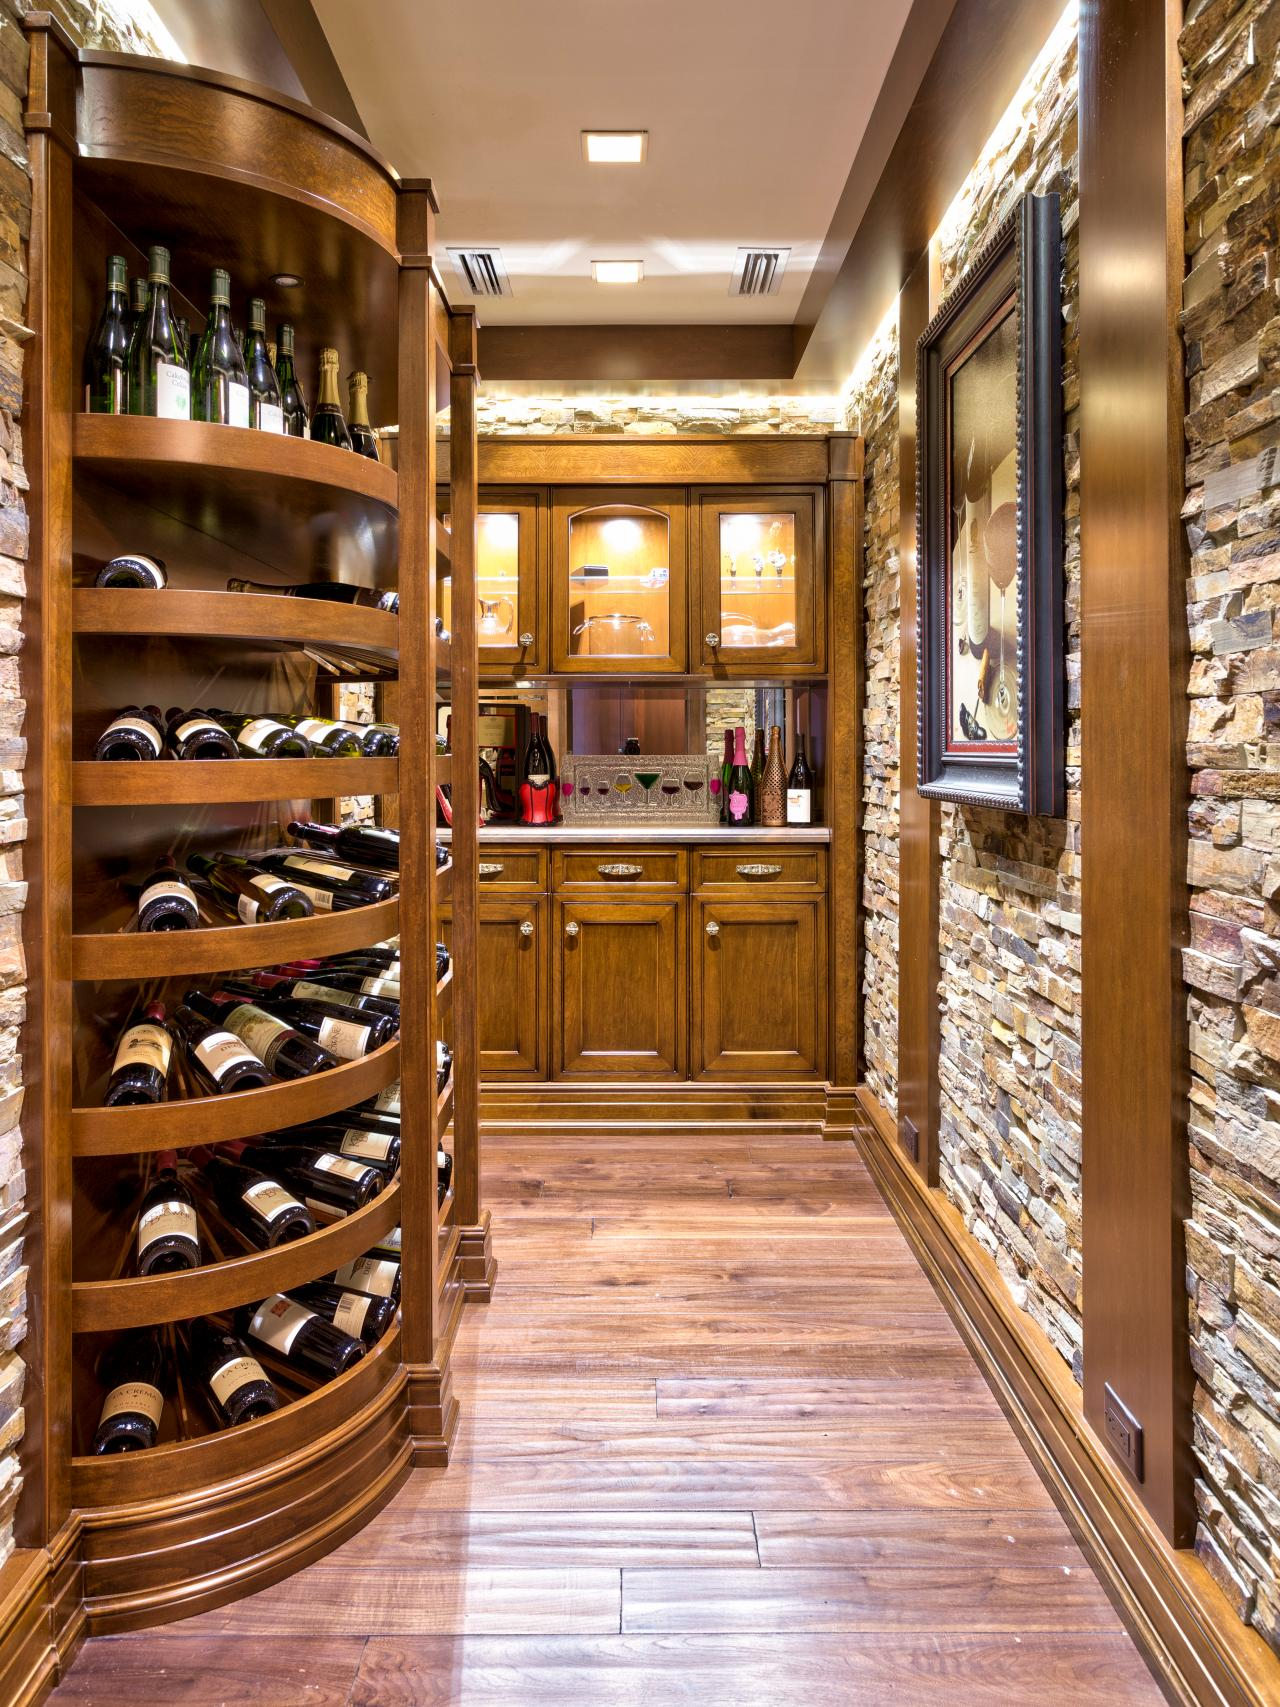 Wine Cellar Kitchen Floor A Warm Luxury Rustic Retreat In North Carolina Adorable Home